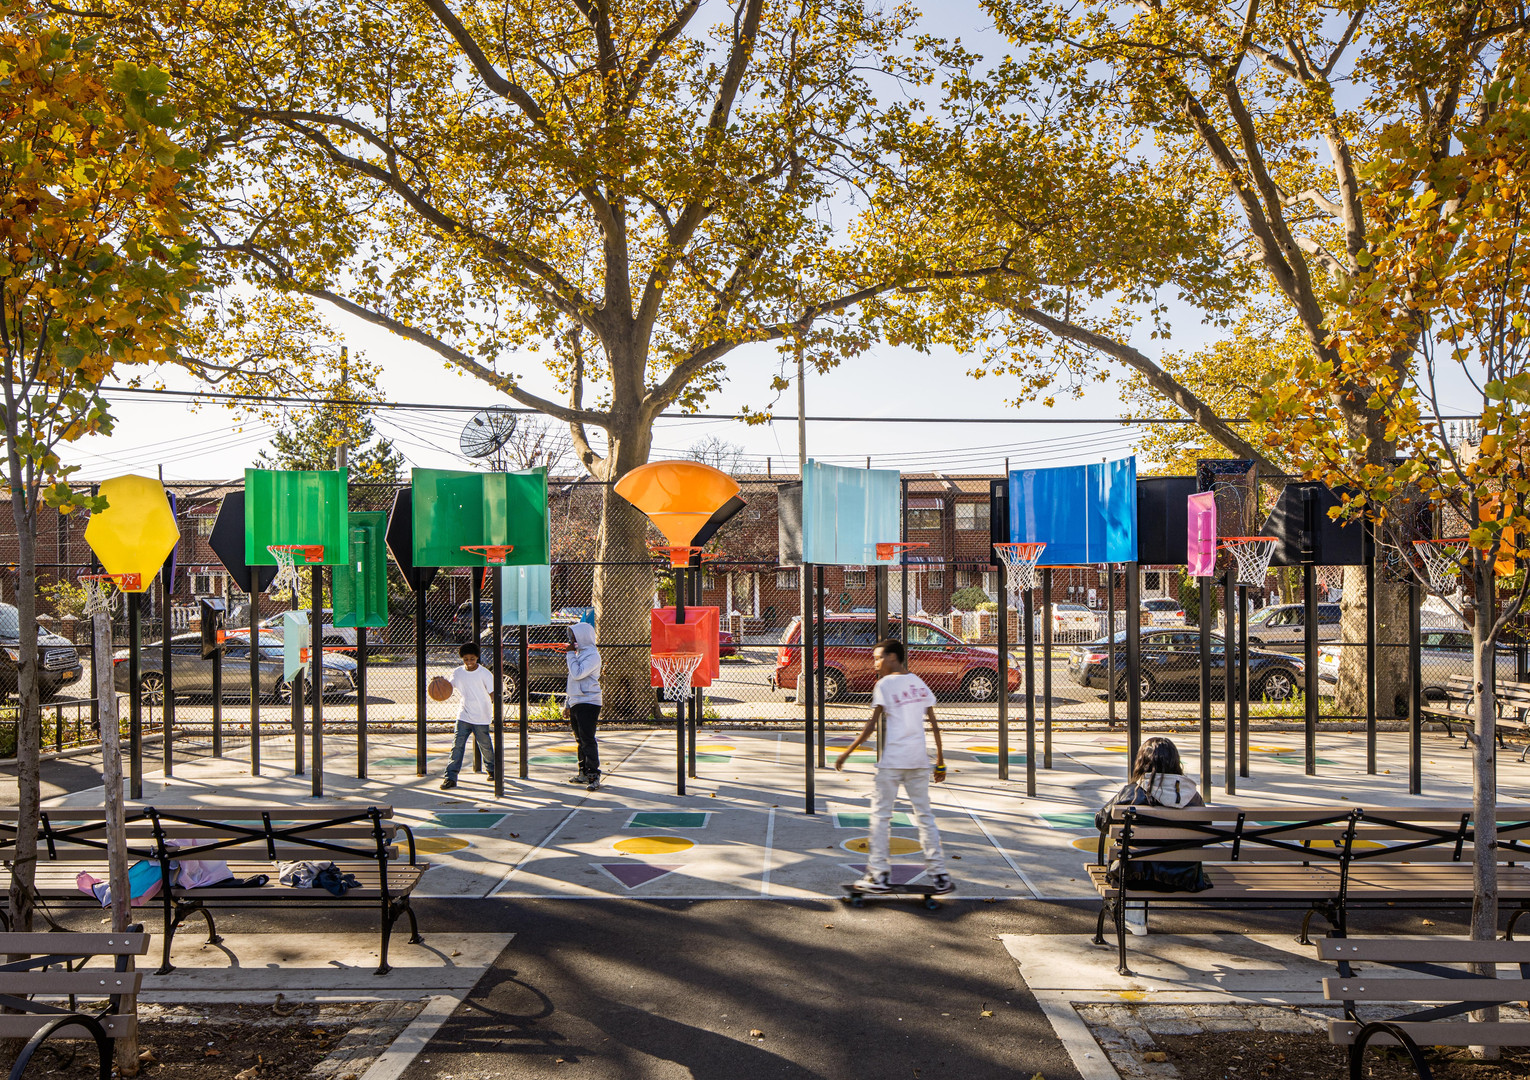 The Brownsville park offers first-of-its-kind play equipment for New Yorkers. An accessible basketball circuit provides non-conventional backboards to create an inclusionary game for participants of all ages, physical, and mental abilities.